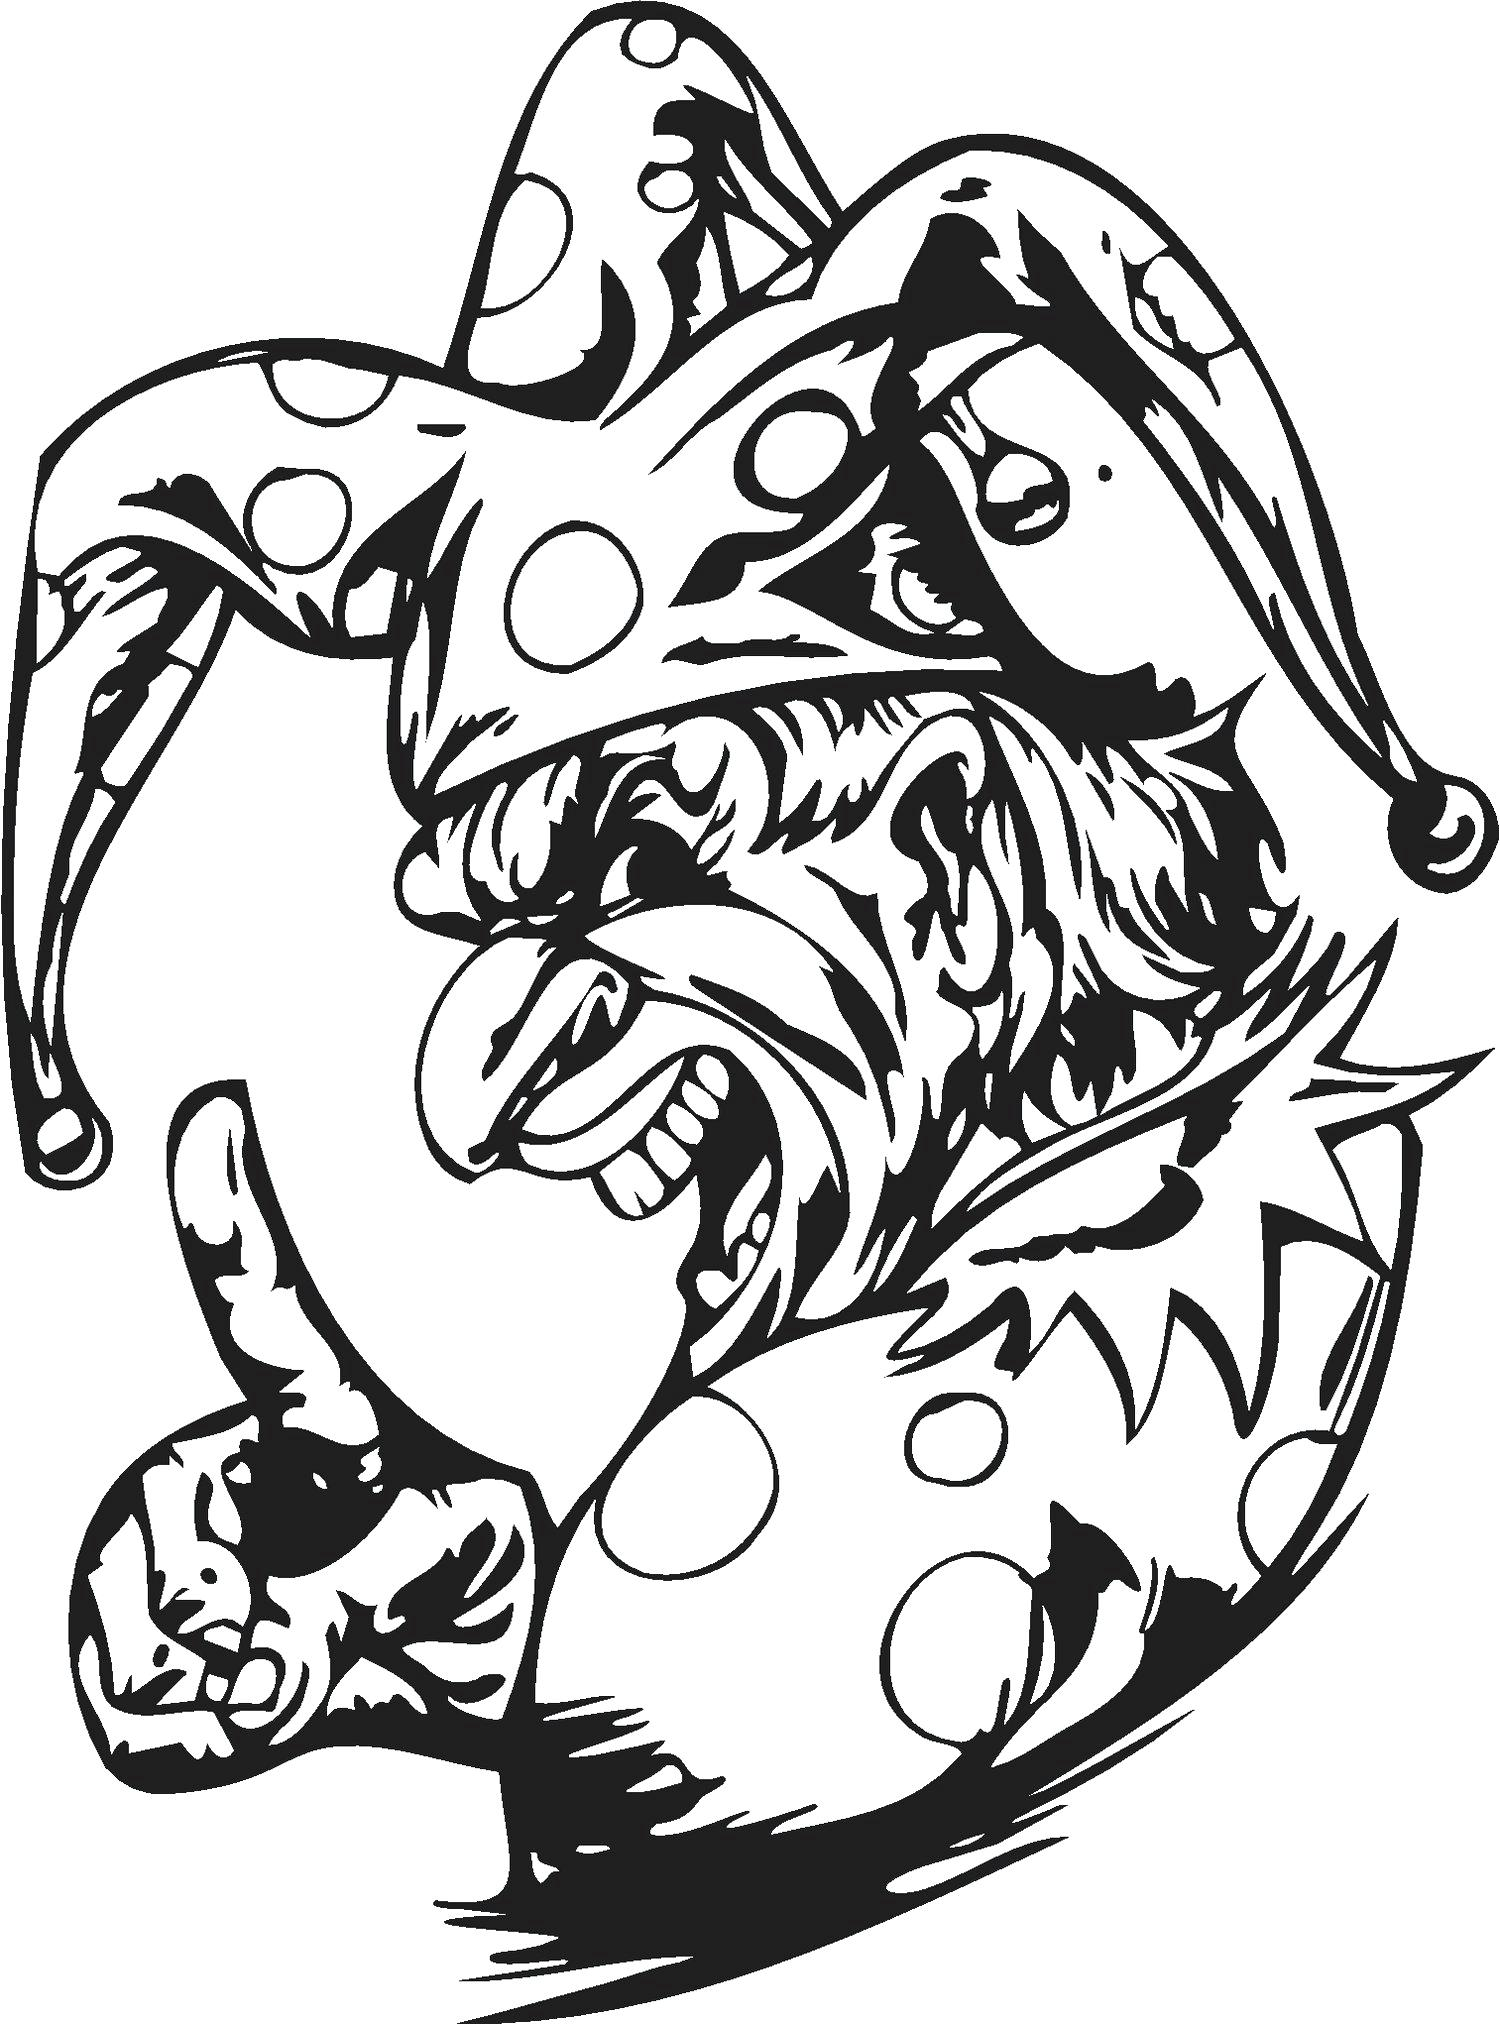 scary clown printable coloring pages | Evil Joker Drawing at GetDrawings.com | Free for personal ...